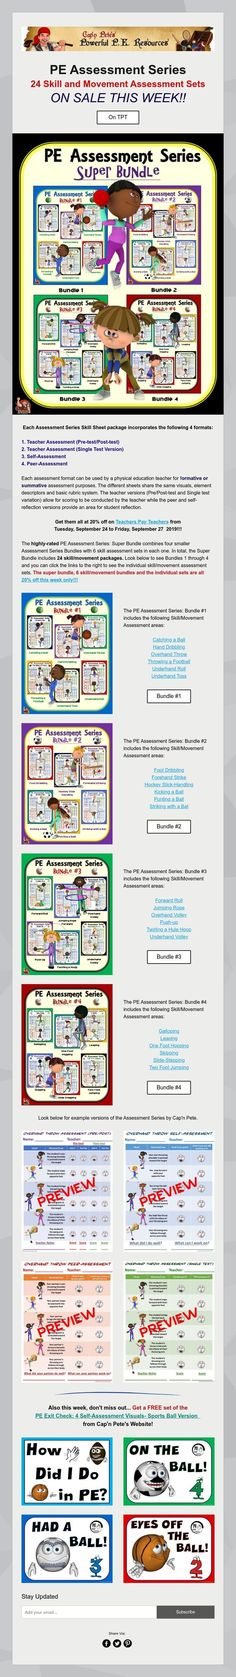 PE Assessment Series- ON SALE THIS WEEK!! Promotion Strategy, Health Promotion, Health And Physical Education, Pe Games, Assessment, Fun Workouts, Physics, Student, Activities